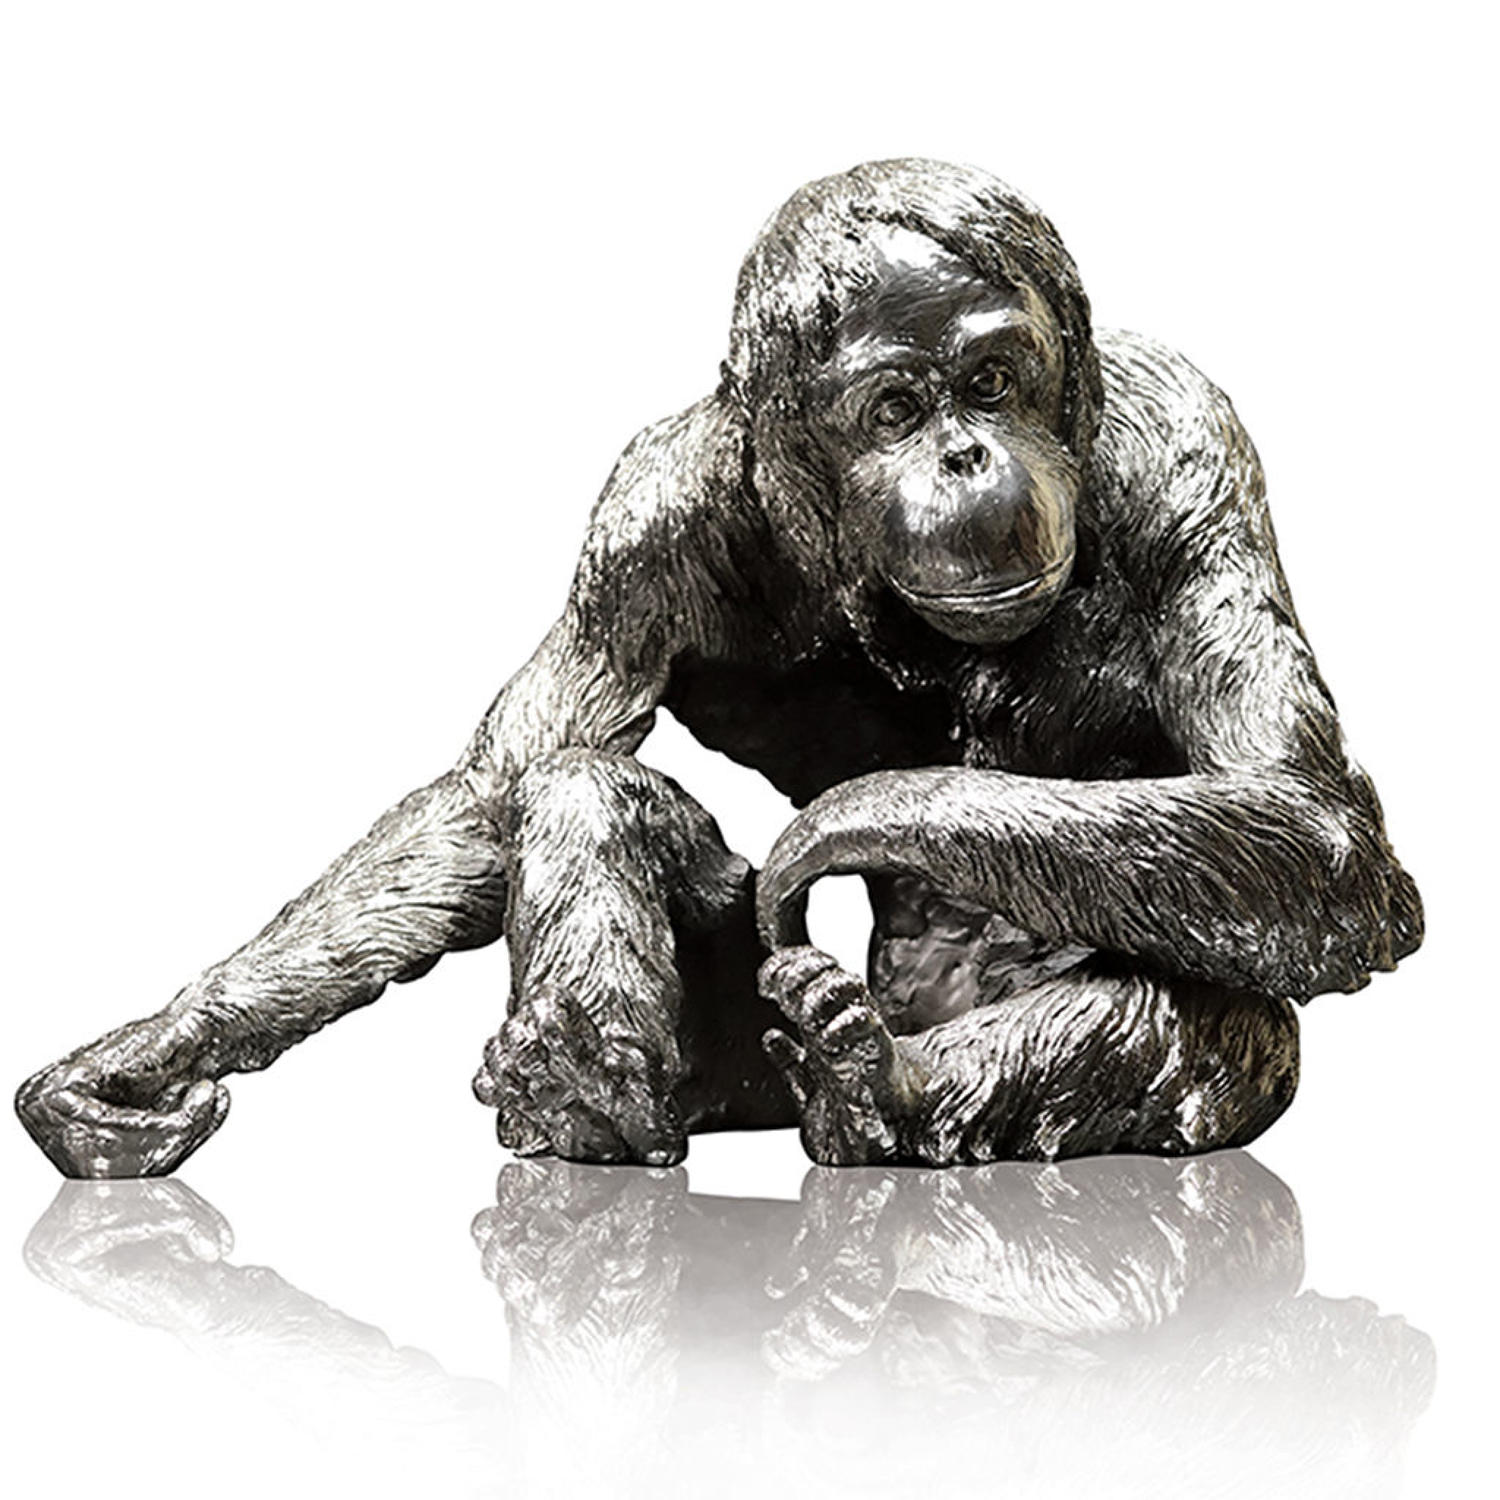 Nickel Resin Orangutan sculpture